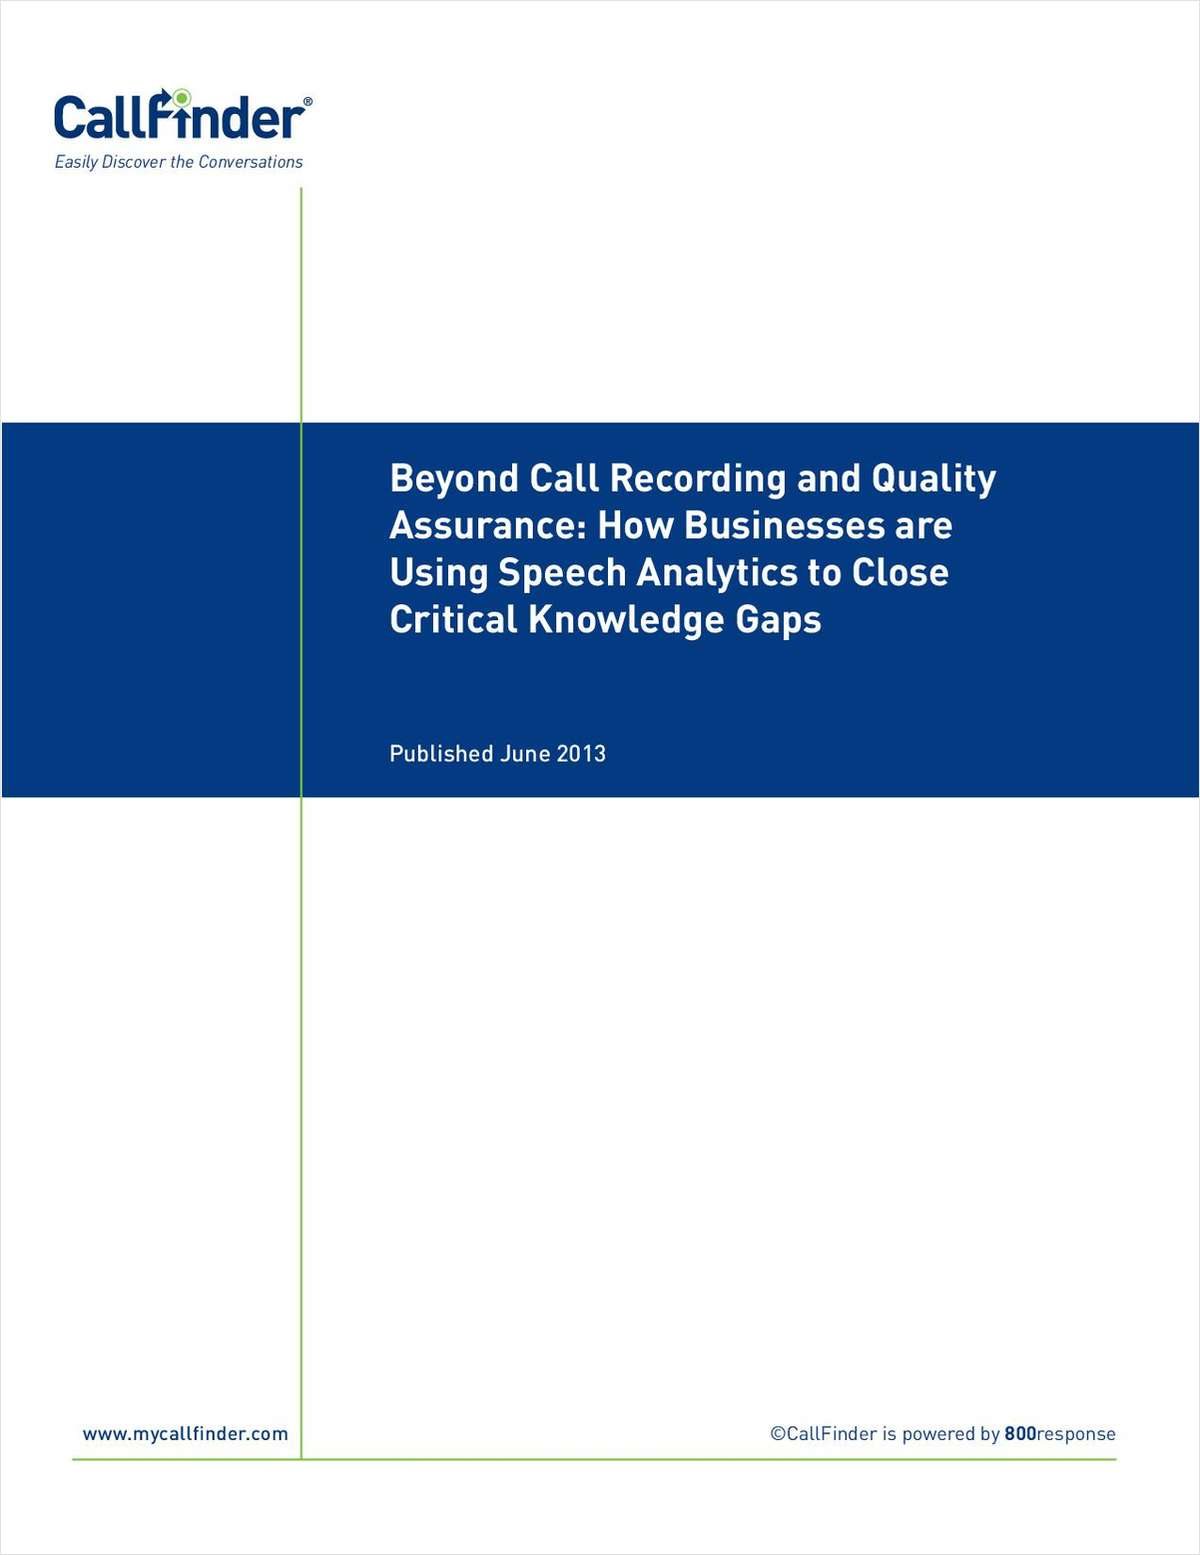 Beyond Call Recording for Quality Assurance: How Businesses are Using Speech Analytics to Close Critical Knowledge Gaps